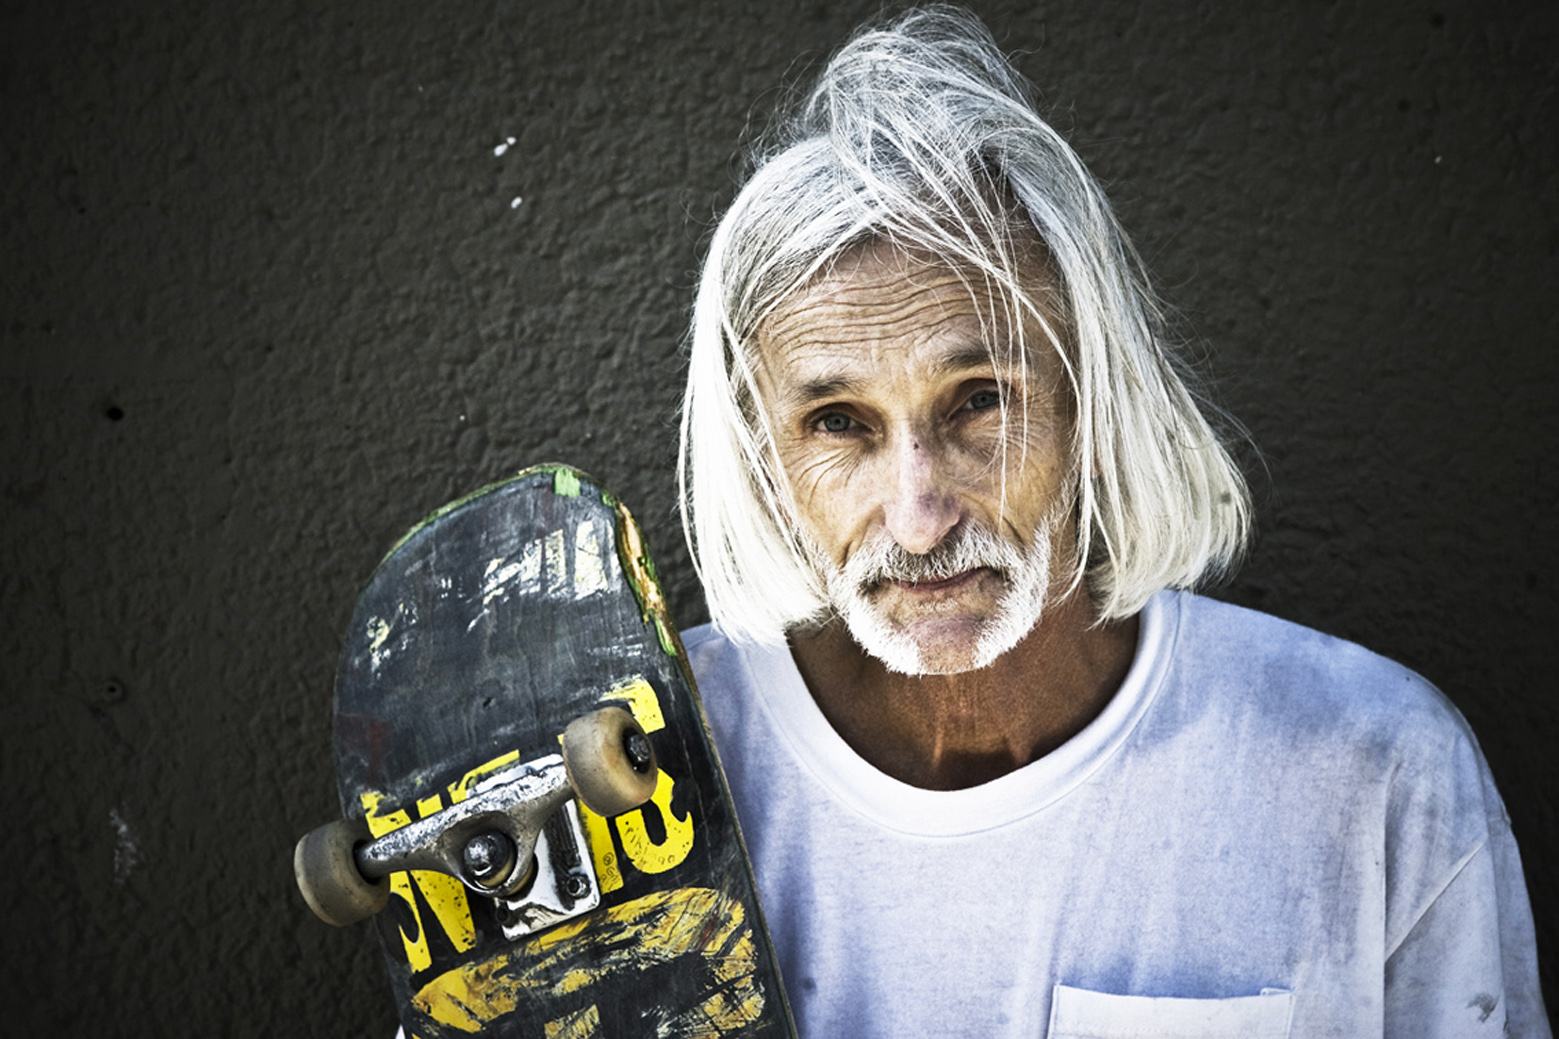 Too Old To Skate?